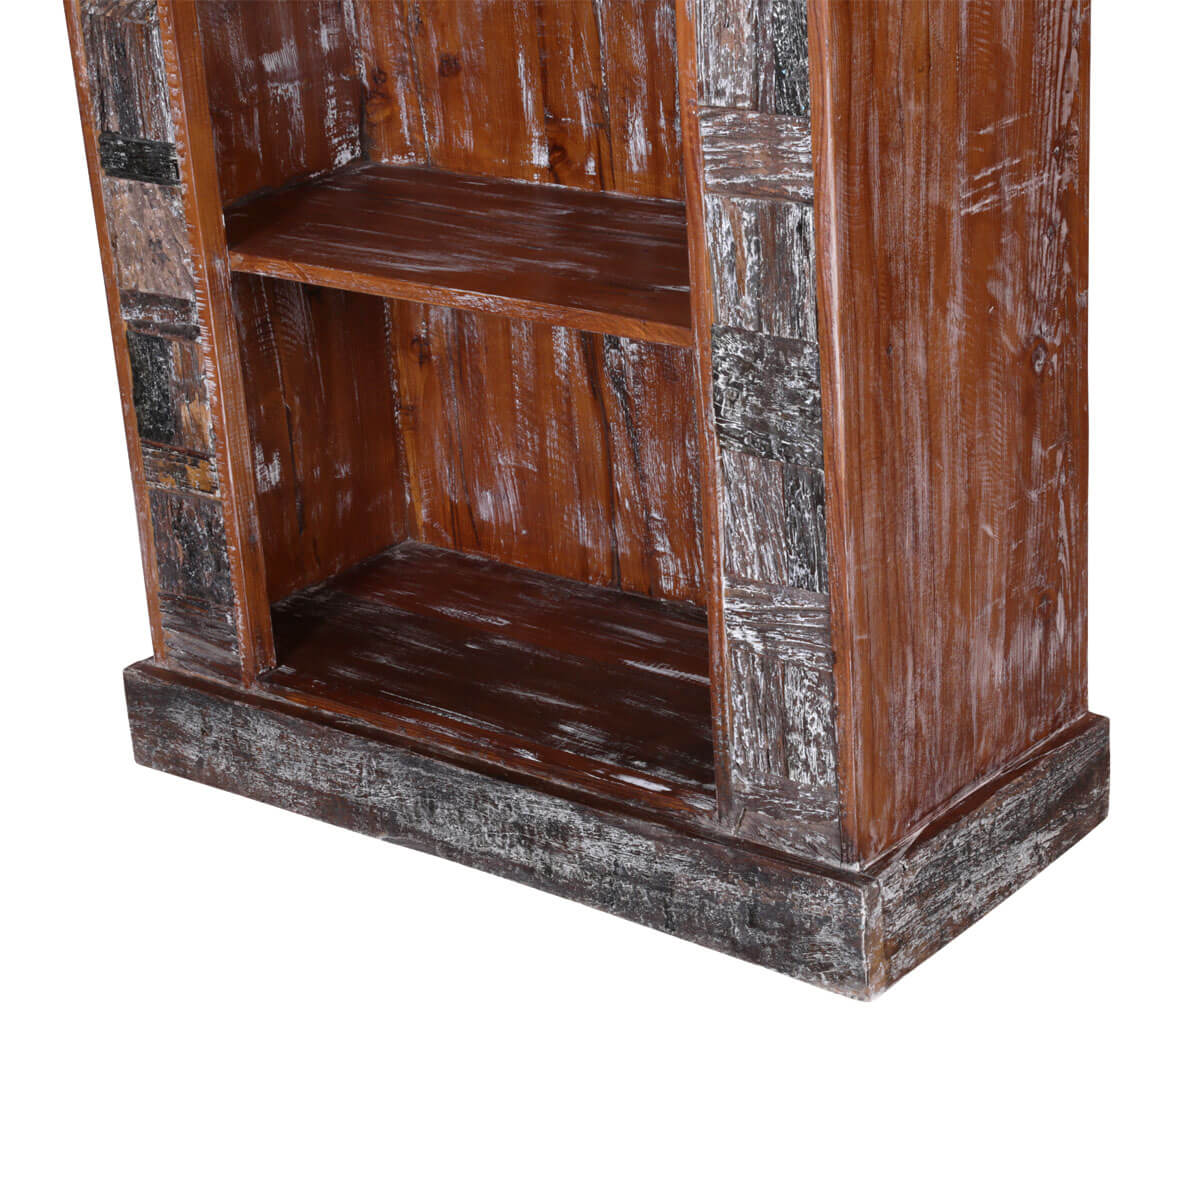 Boone Hand Carved Reclaimed Wood 3 Shelf Rustic Bookcase